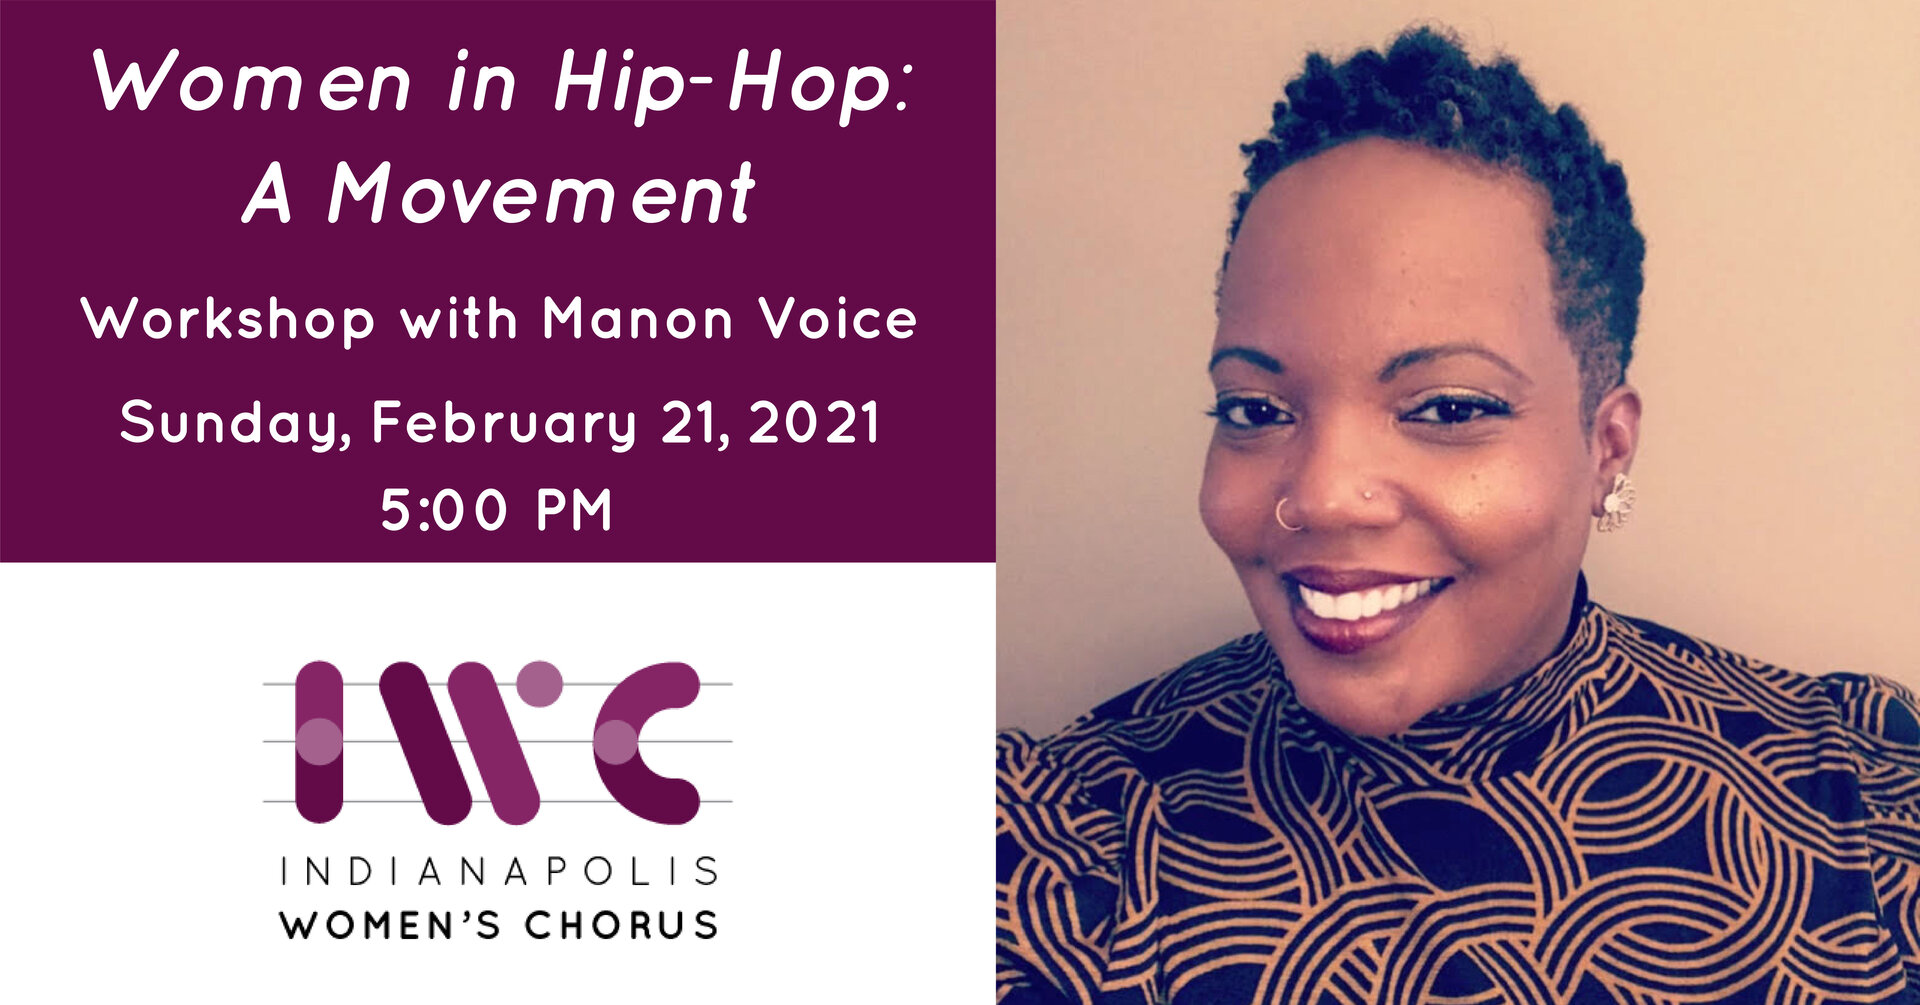 Workshop with Manon Voice: Women in Hip-Hop: A Movement